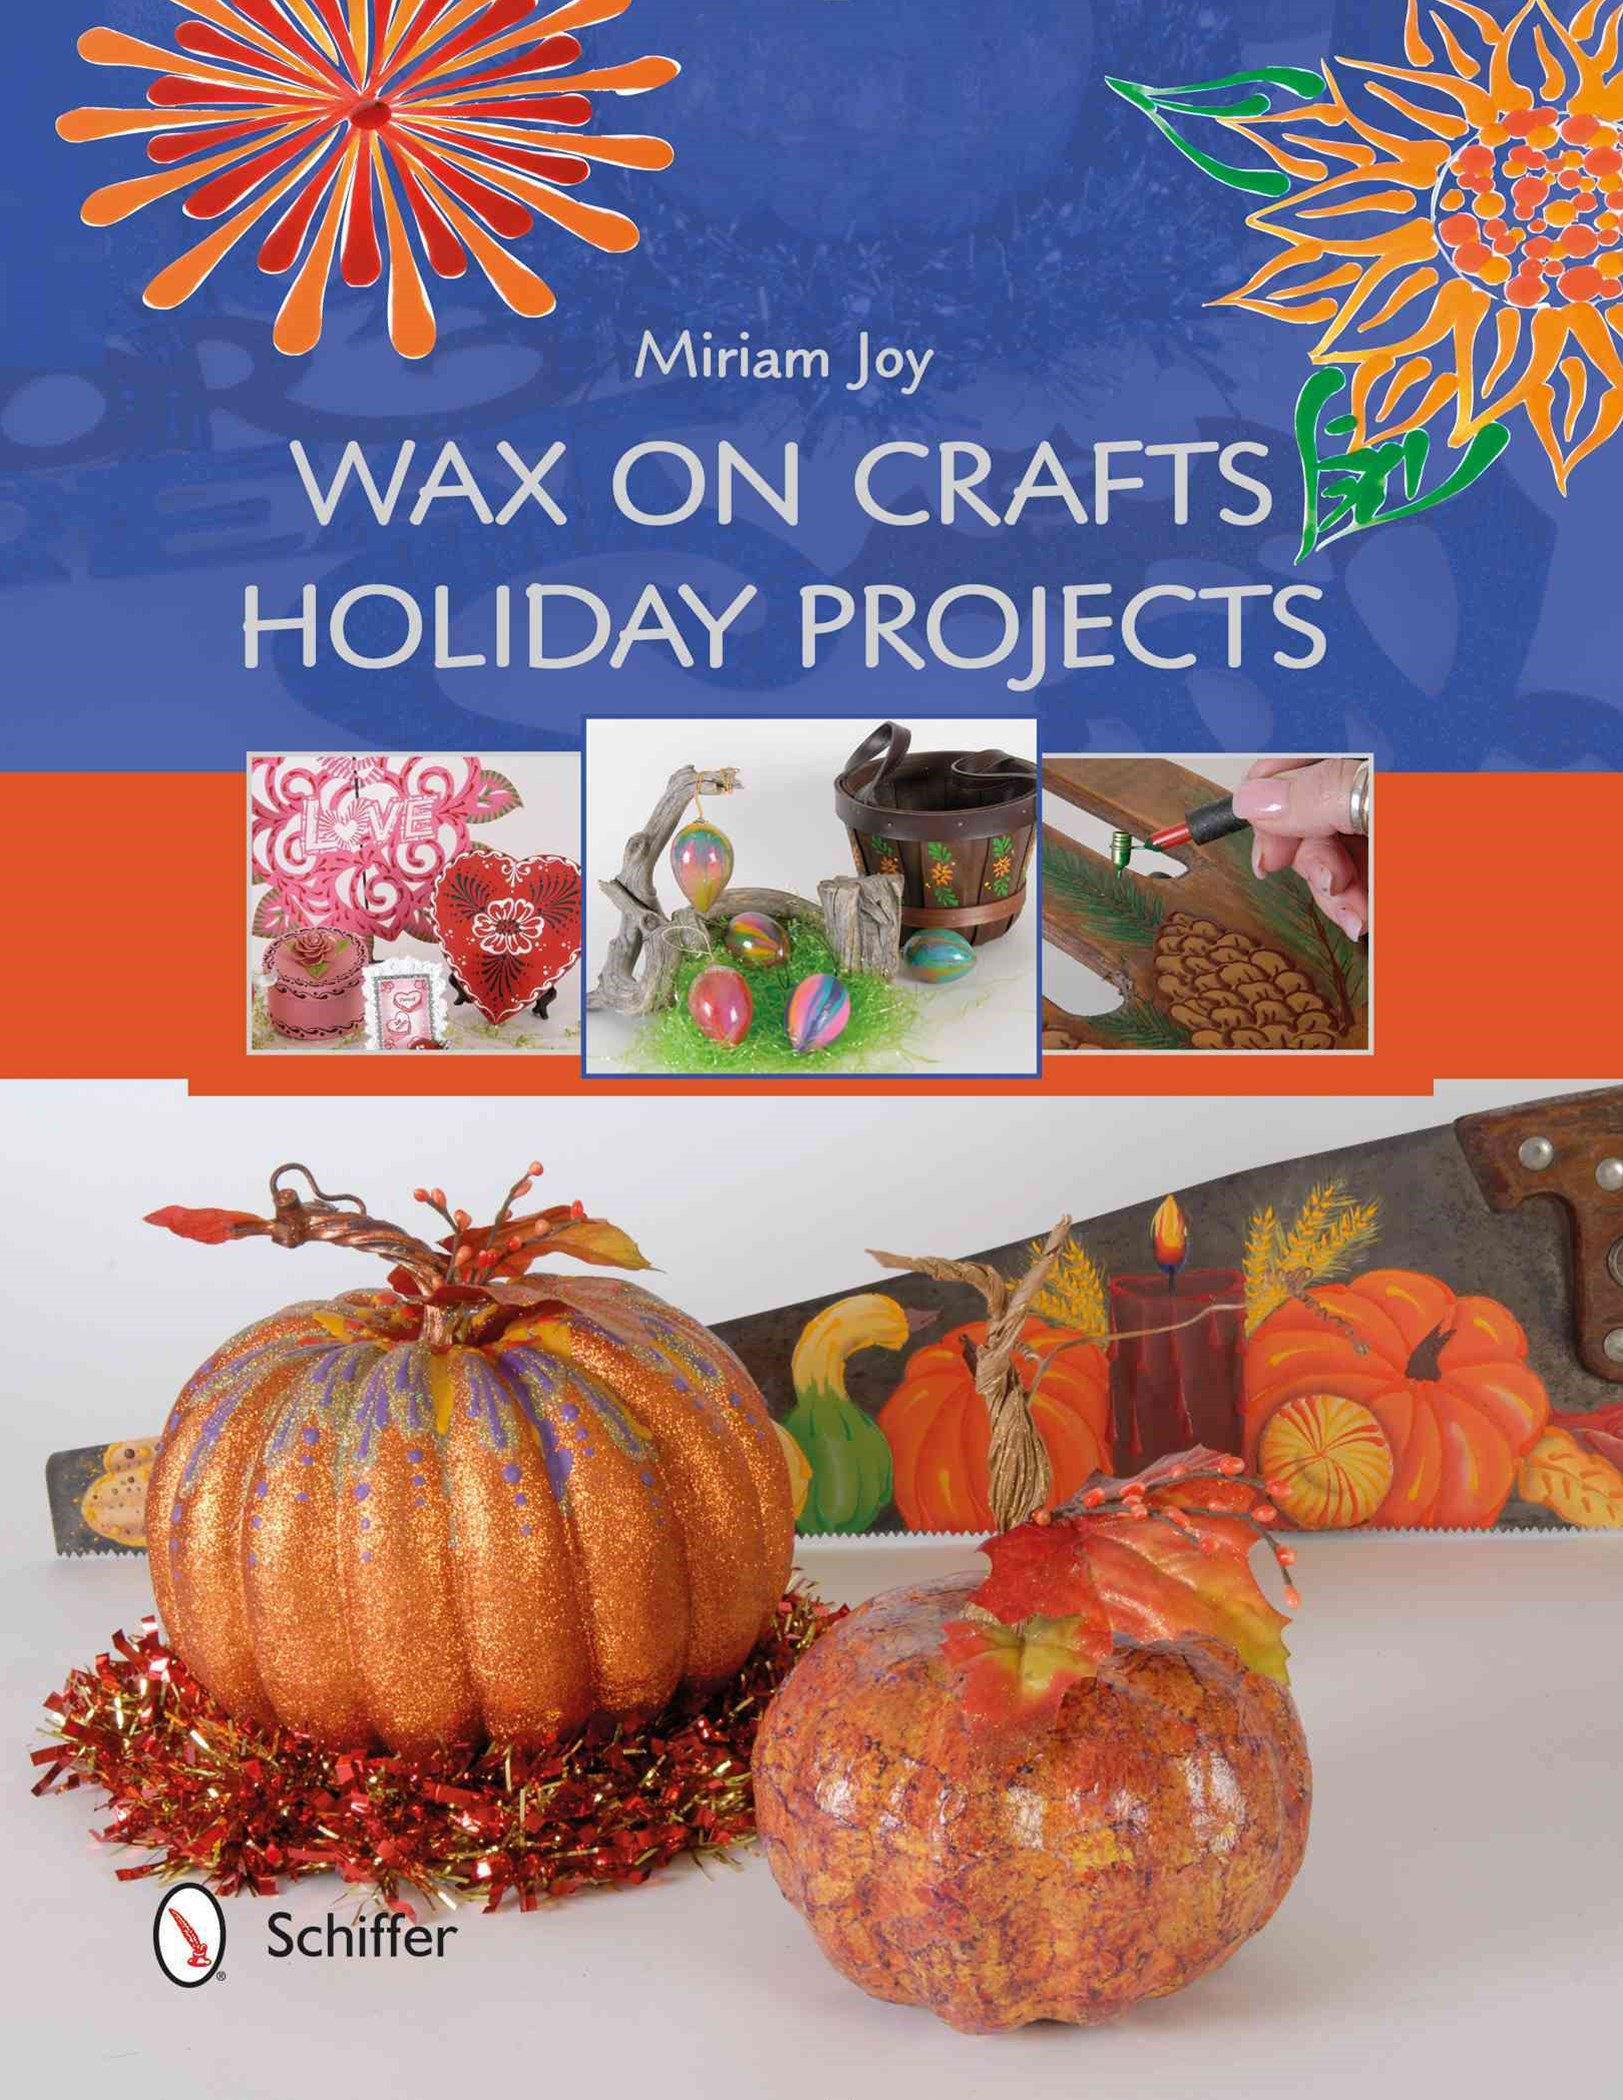 Wax on Crafts Holiday Projects